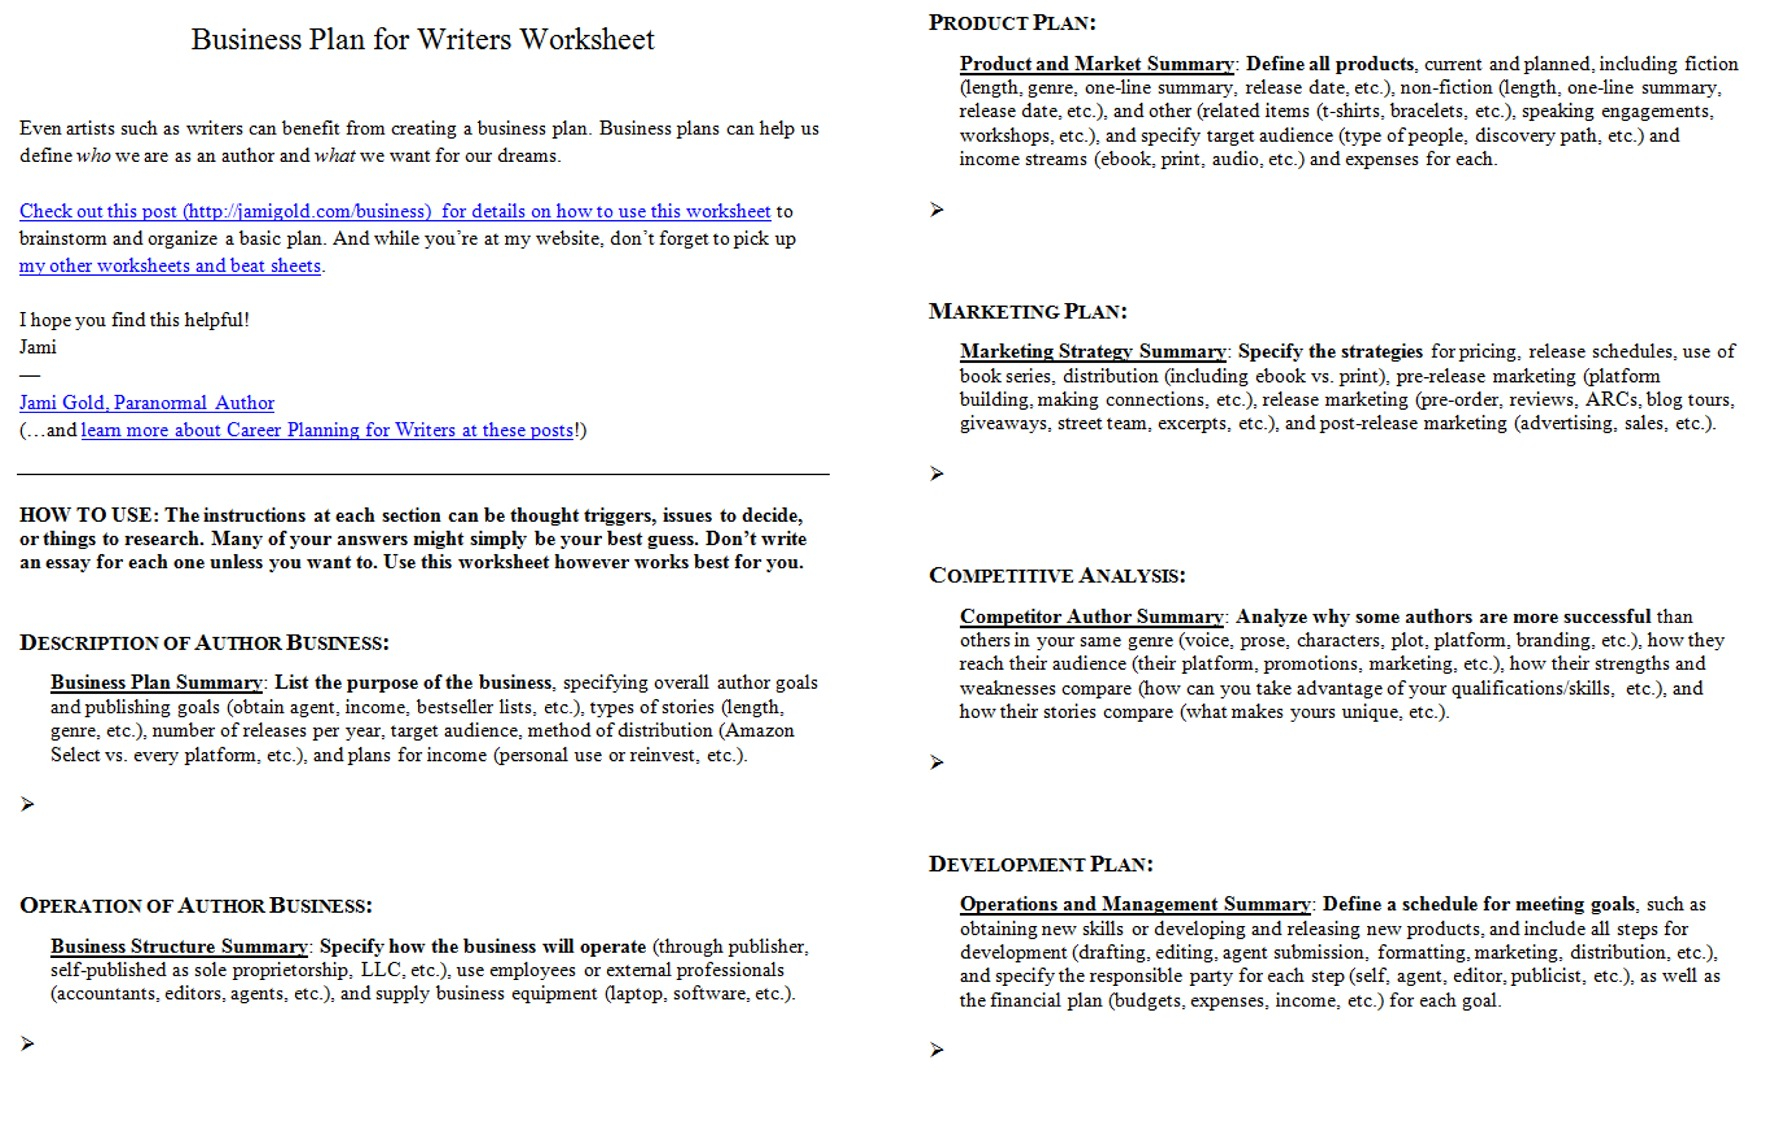 Weirdmailus  Sweet Worksheets For Writers  Jami Gold Paranormal Author With Likable Screen Shot Of Both Pages Of The Business Plan For Writers Worksheet With Astounding Organic Chemistry Nomenclature Practice Worksheet Also Hooked On Phonics Worksheets In Addition Rainforest Worksheet And Past Continuous Worksheet As Well As Night By Elie Wiesel Worksheets Additionally Quadratic Functions Word Problems Worksheet From Jamigoldcom With Weirdmailus  Likable Worksheets For Writers  Jami Gold Paranormal Author With Astounding Screen Shot Of Both Pages Of The Business Plan For Writers Worksheet And Sweet Organic Chemistry Nomenclature Practice Worksheet Also Hooked On Phonics Worksheets In Addition Rainforest Worksheet From Jamigoldcom